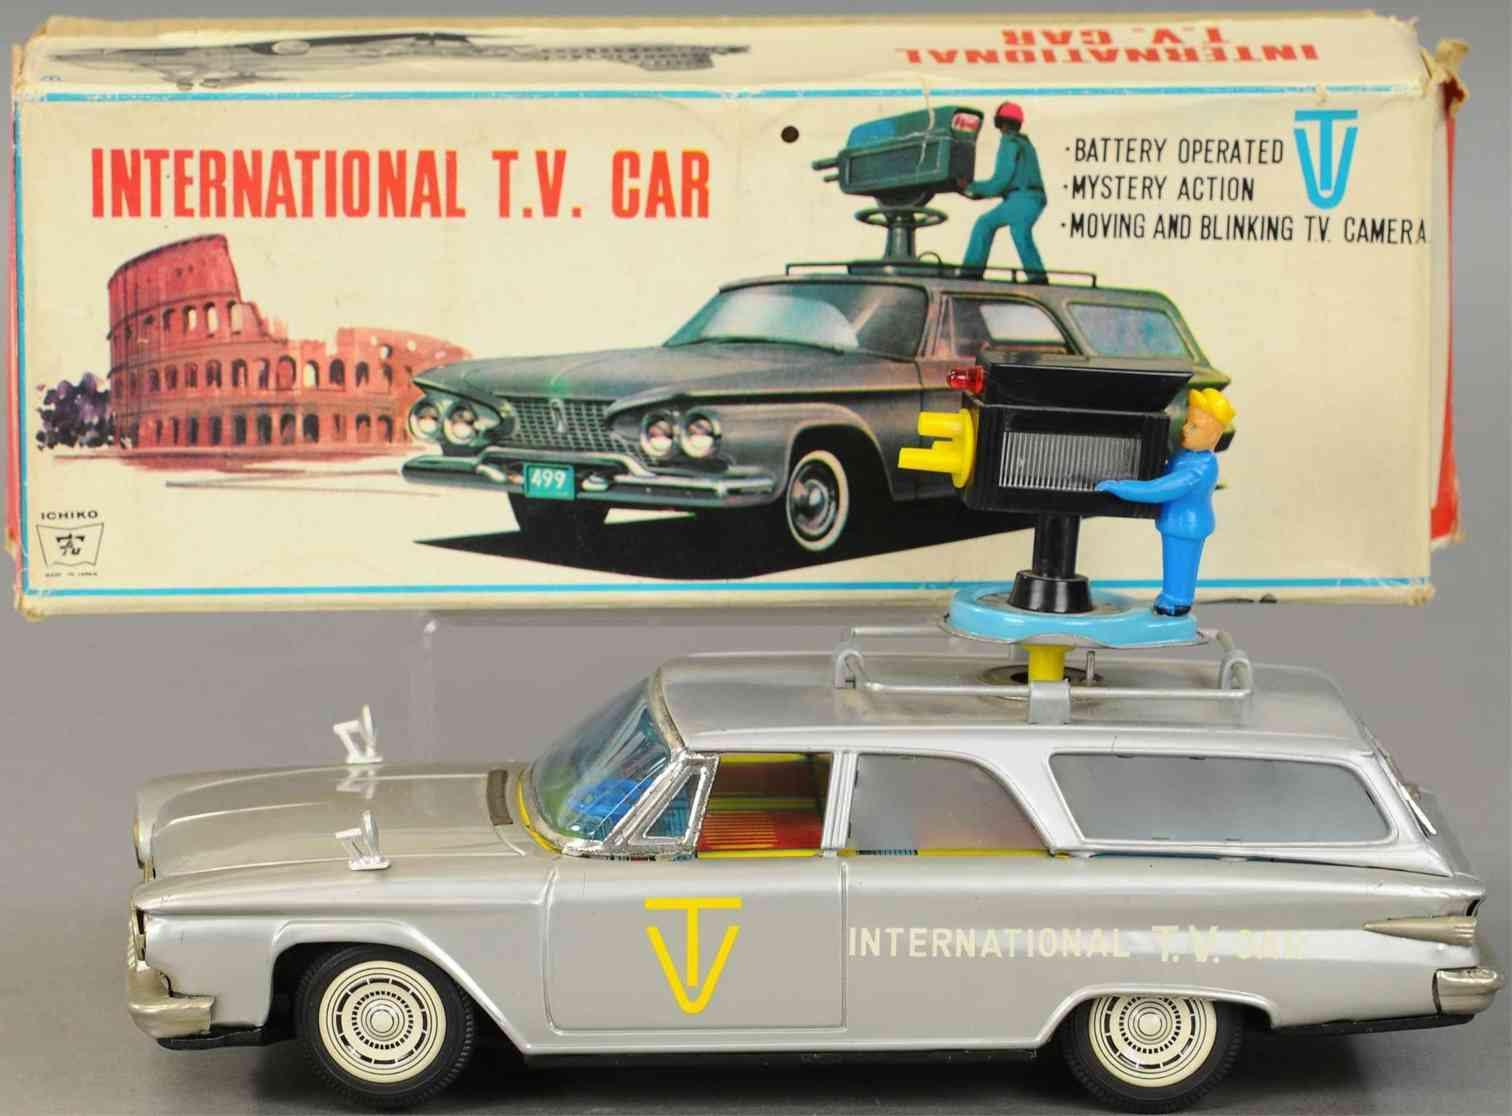 ichiko tin toy international tv car battery operated